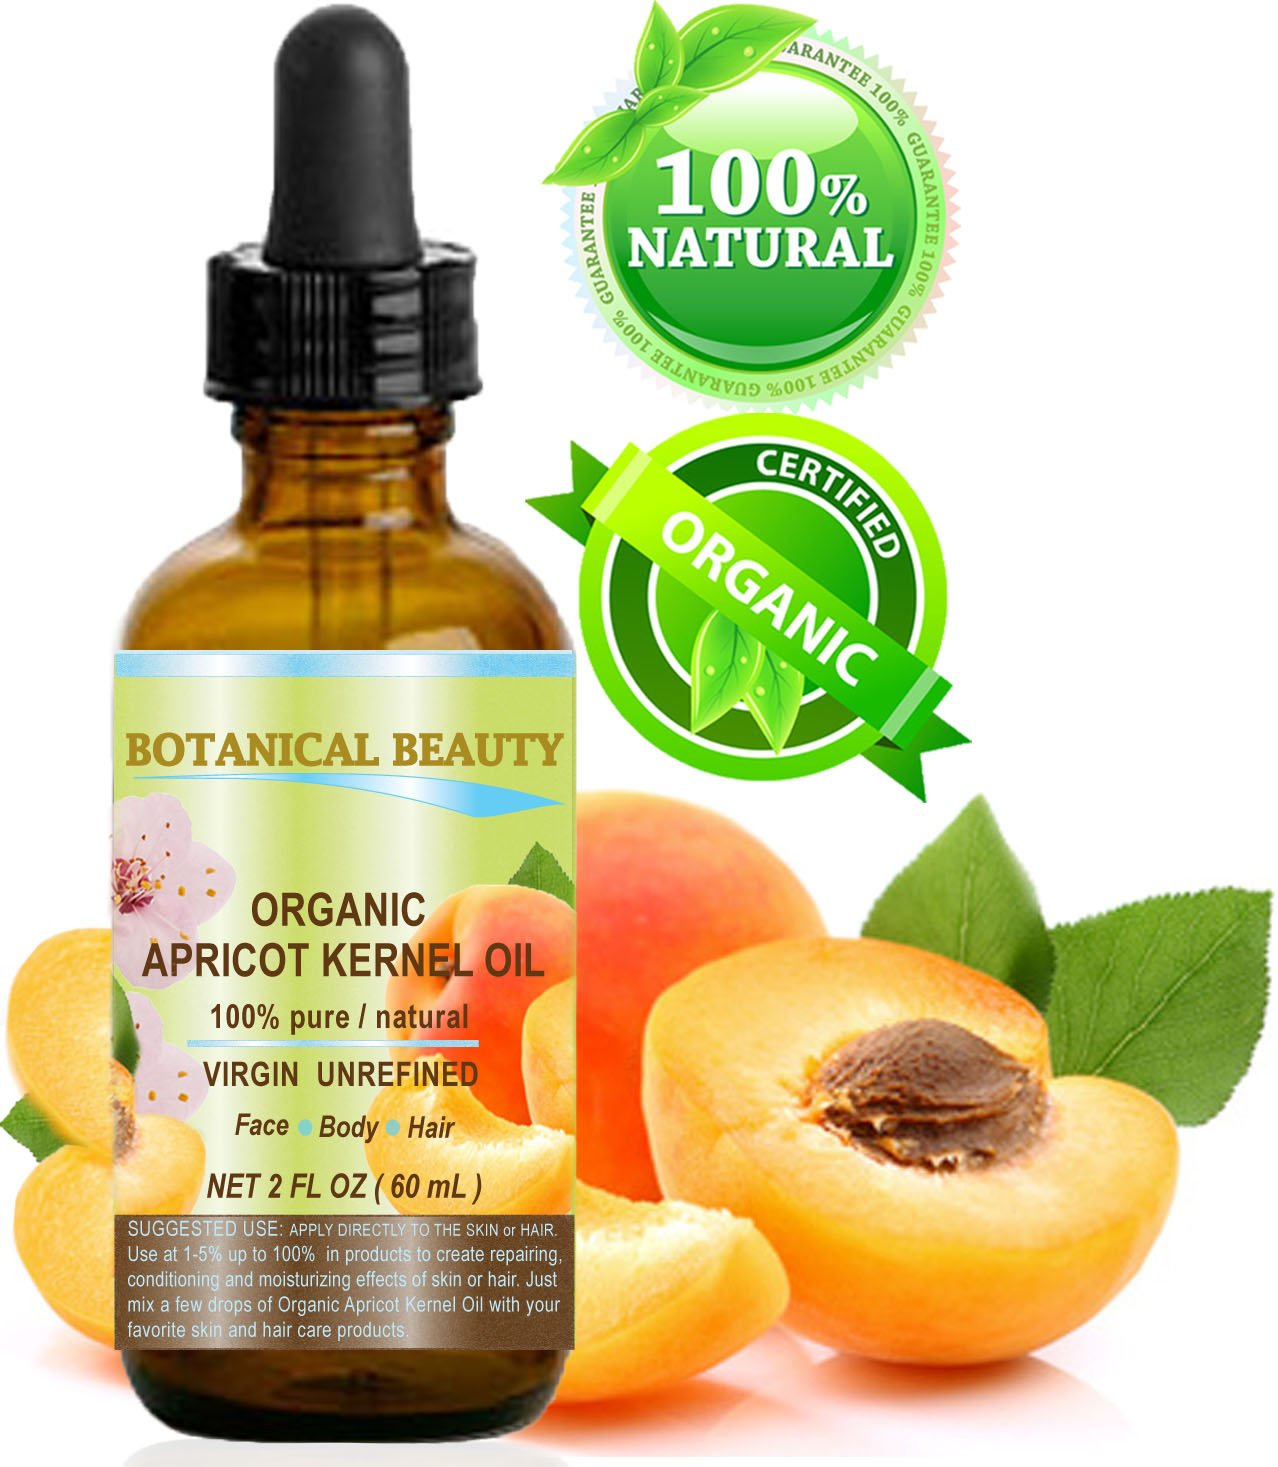 ORGANIC APRICOT KERNEL OIL Australian. 100% Pure / Virgin / Unrefined Cold Pressed Carrier Oil. 2 oz-60 ml. For Face, Hair and Body